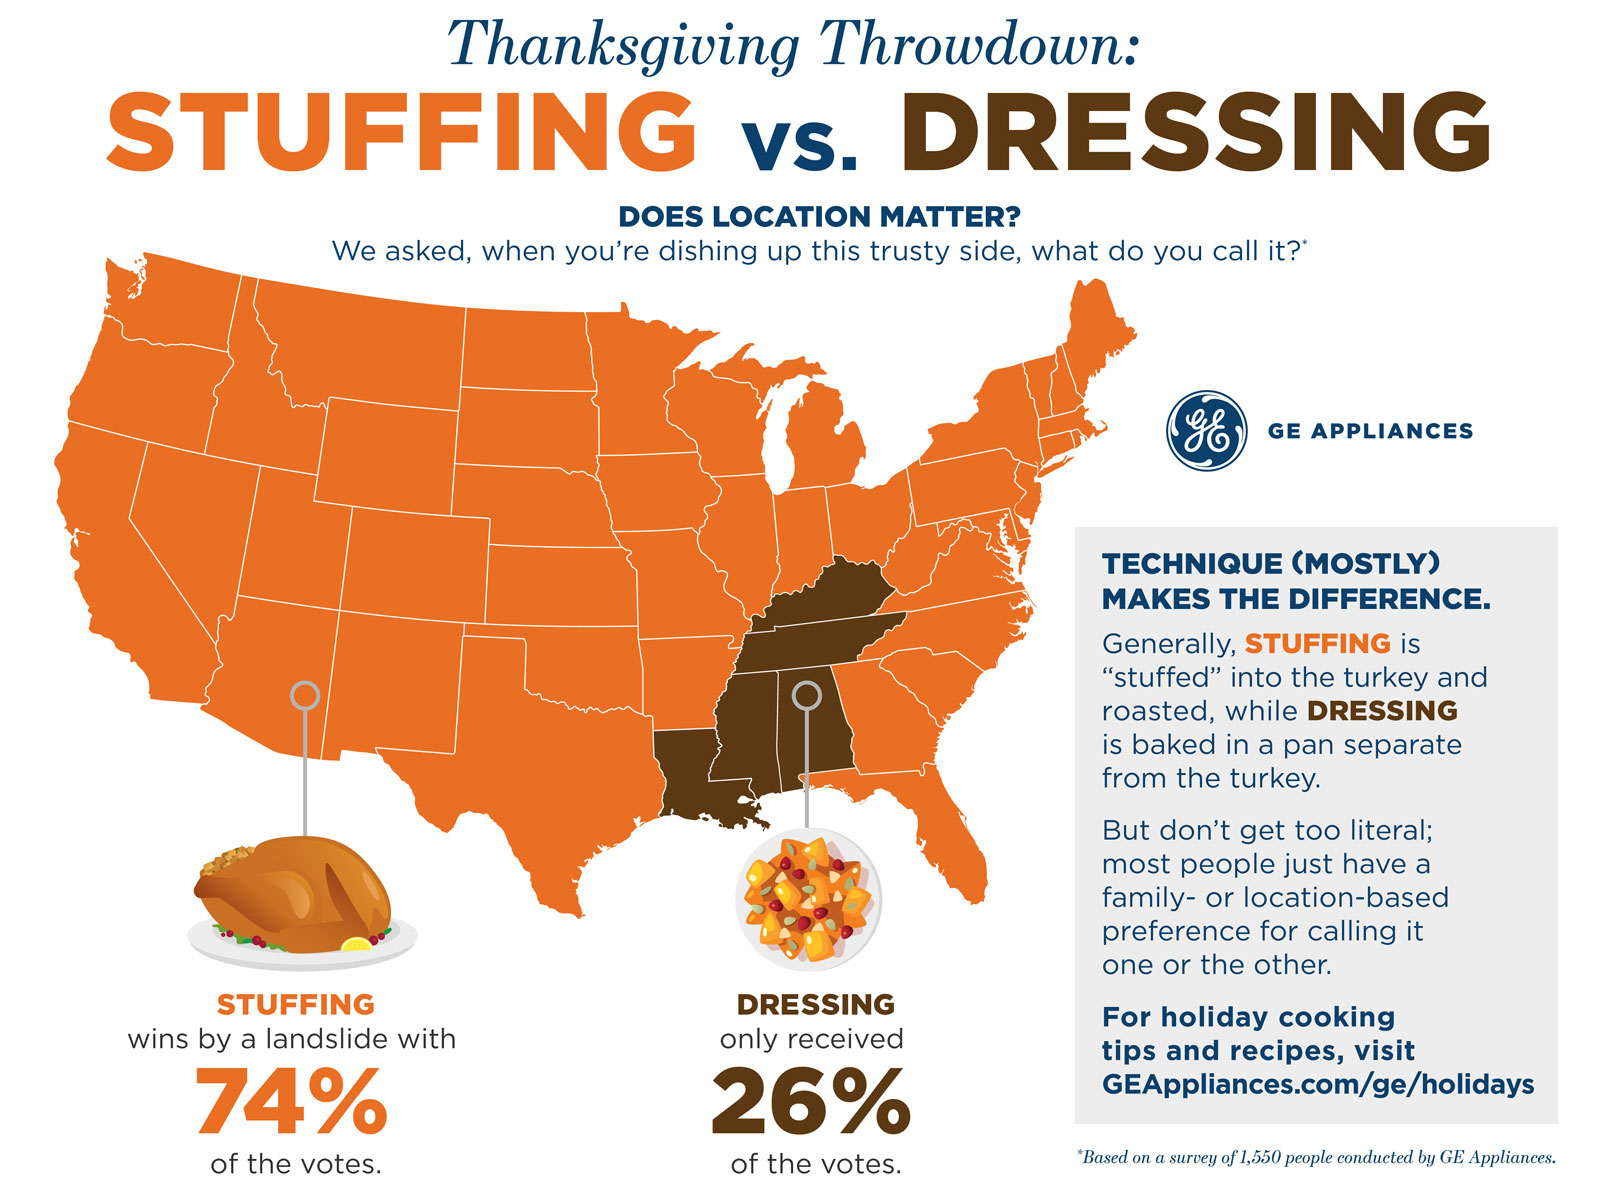 Dressing vs. Stuffing Map